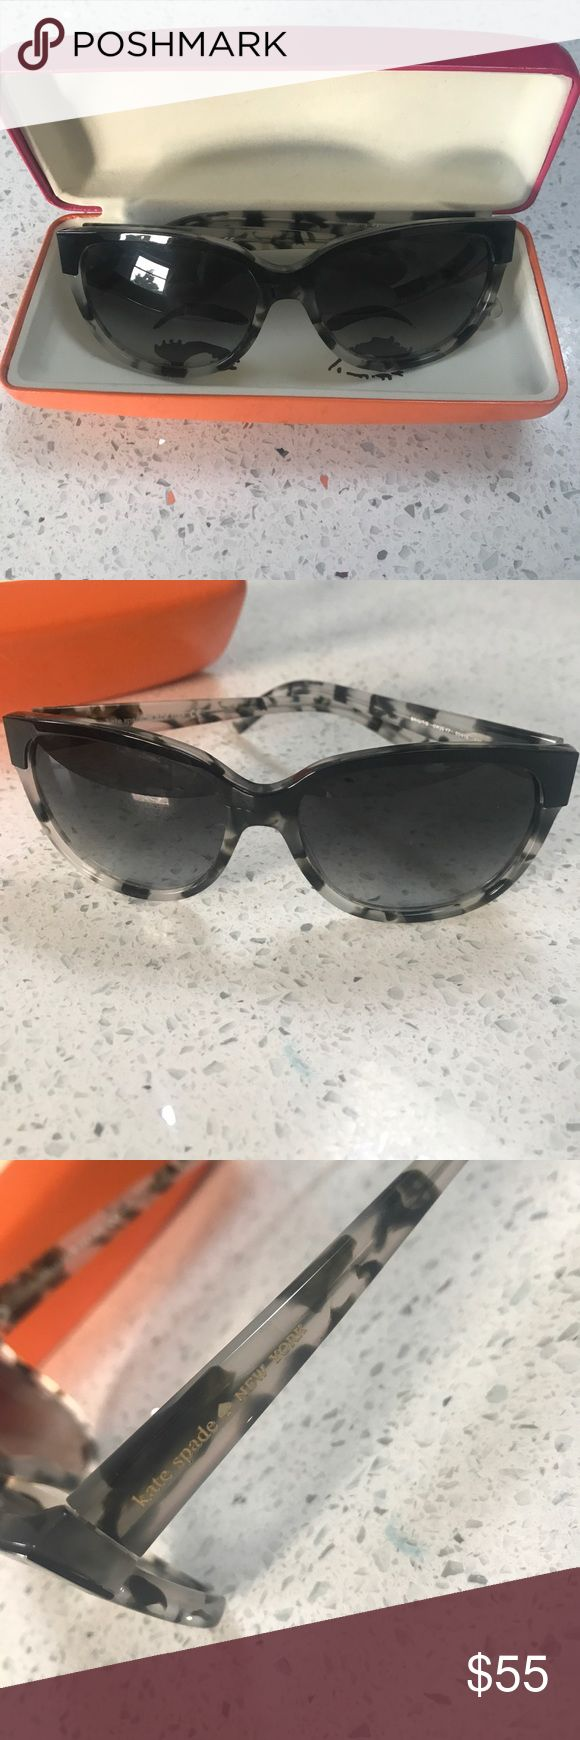 Kate Sapde sunglasses Brigit Like new Kate Spade sunglasses - model: Brigit.  Hardly worn no scratches or sings of wear. Comes with case (the case is in fair condition- a few scuffs) kate spade Accessories Sunglasses